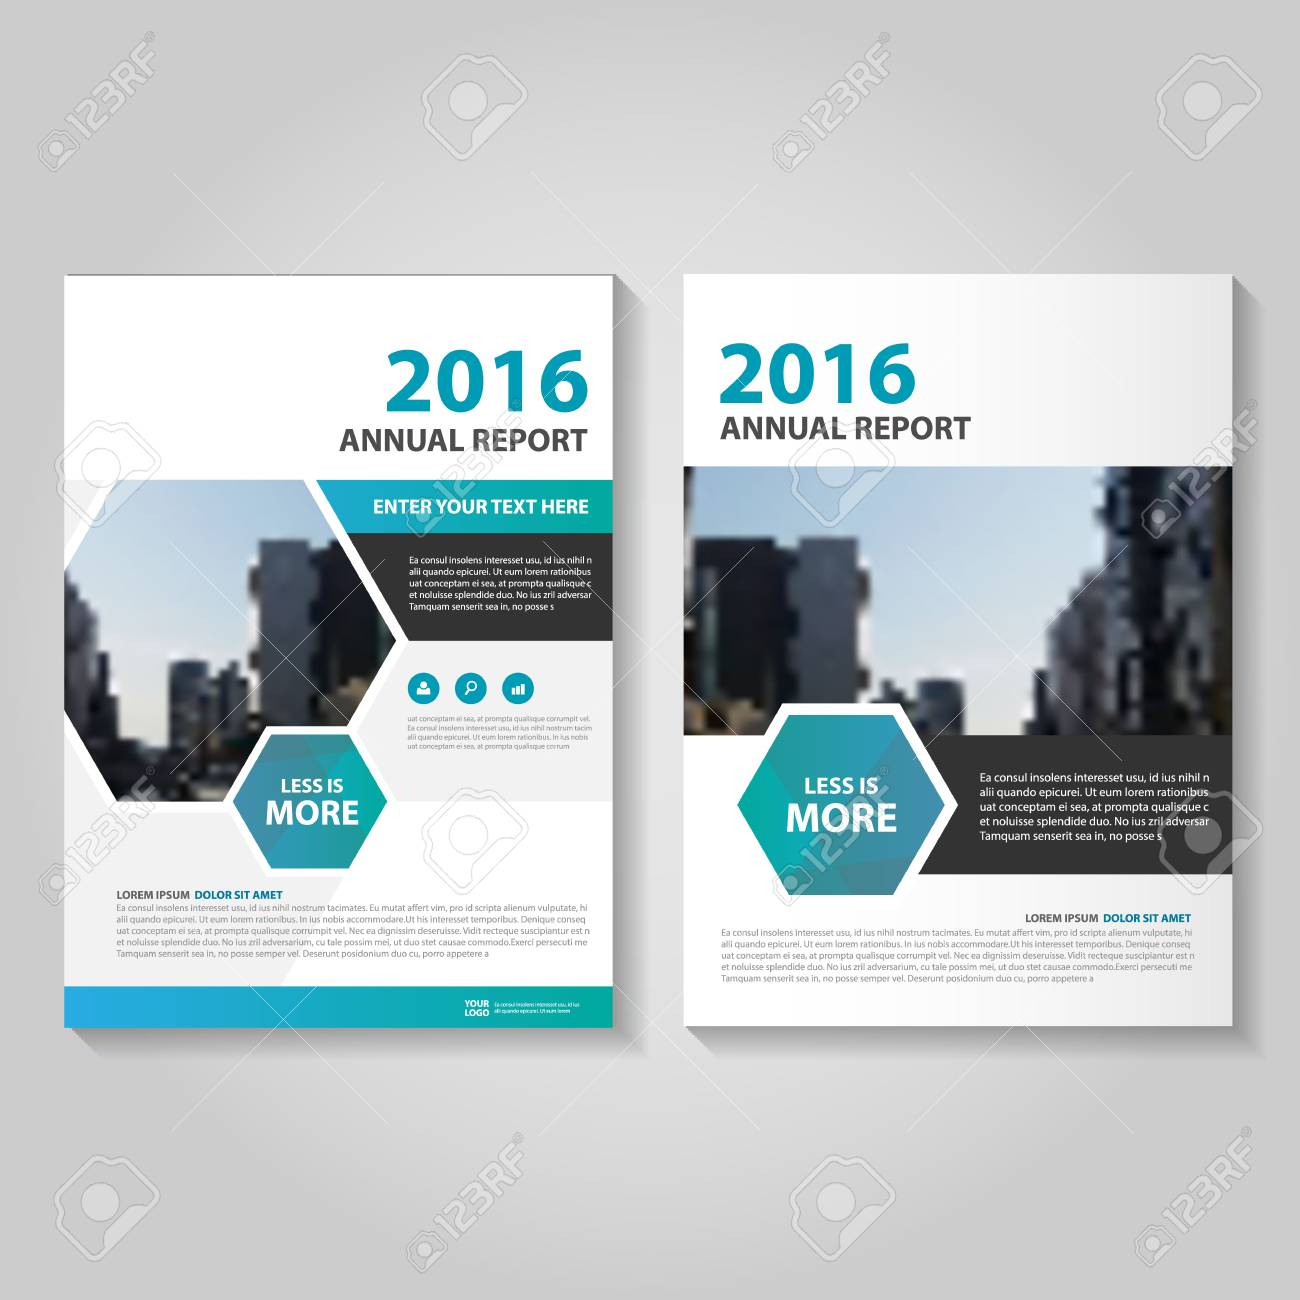 Hexagon Blue Annual Report Leaflet Brochure Template Design     Hexagon Blue annual report Leaflet Brochure template design  book cover layout  design  Abstract Hexagon